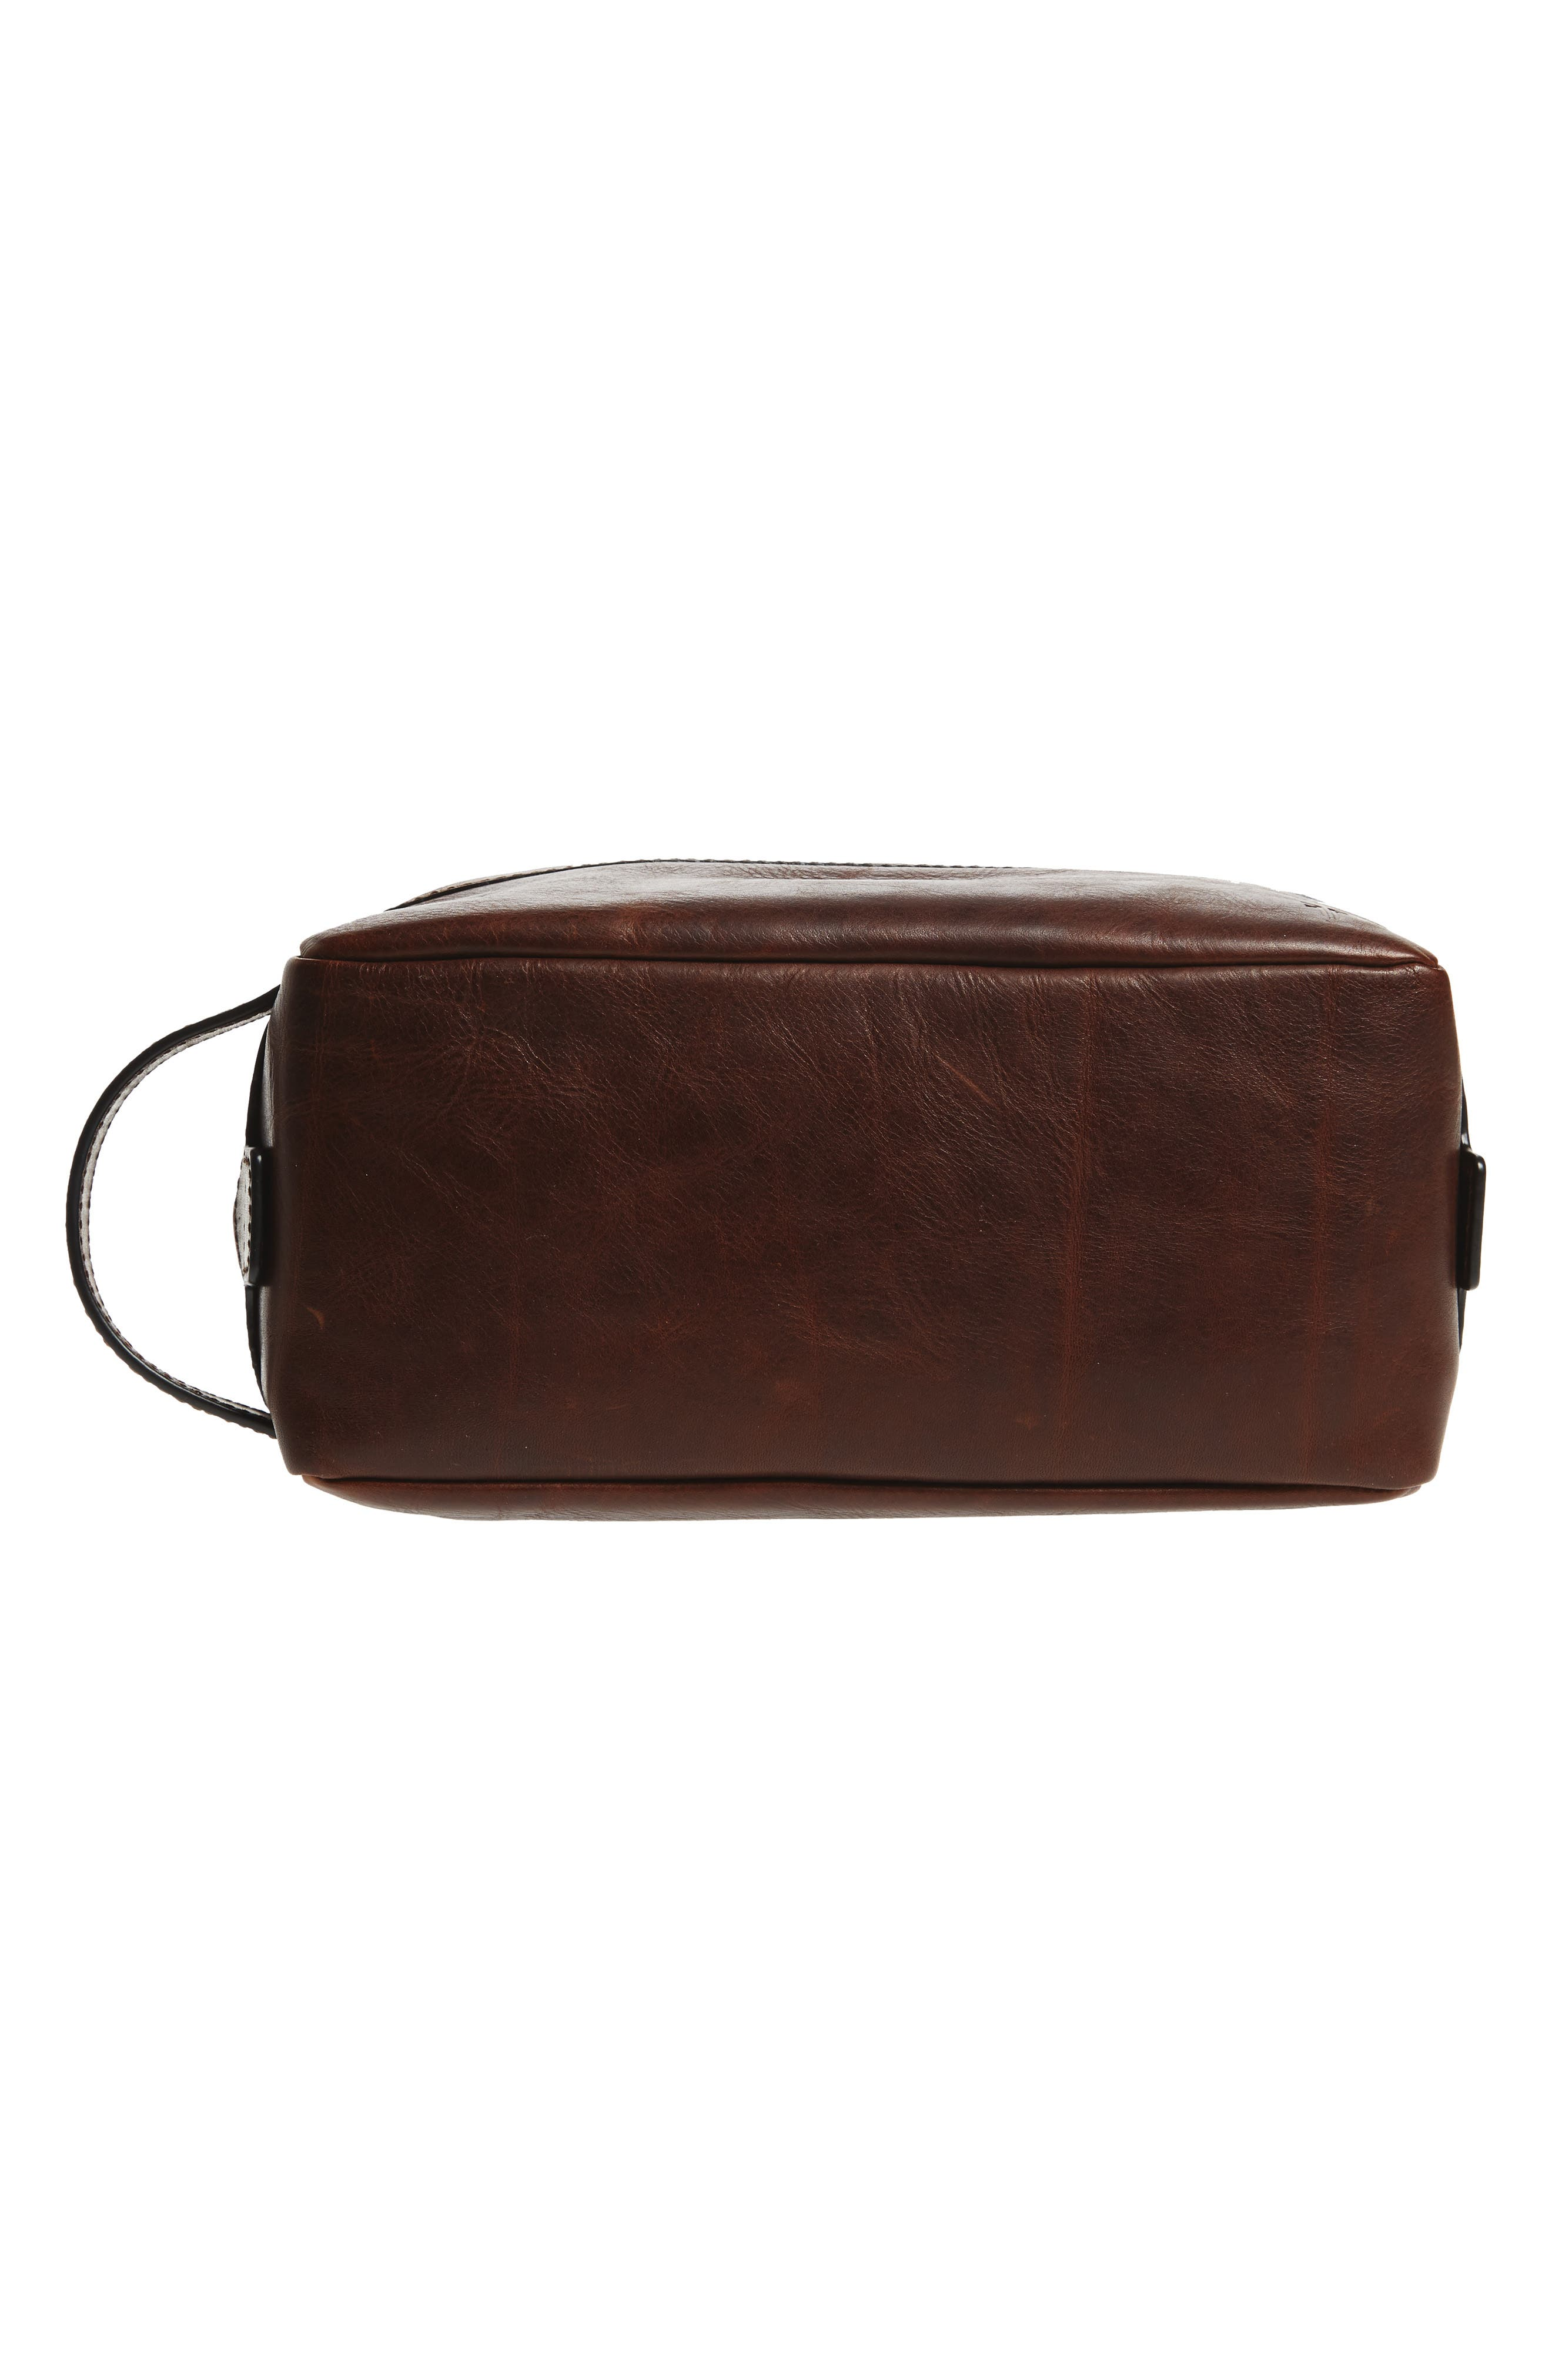 'Logan' Leather Travel Kit,                             Alternate thumbnail 5, color,                             Dark Brown